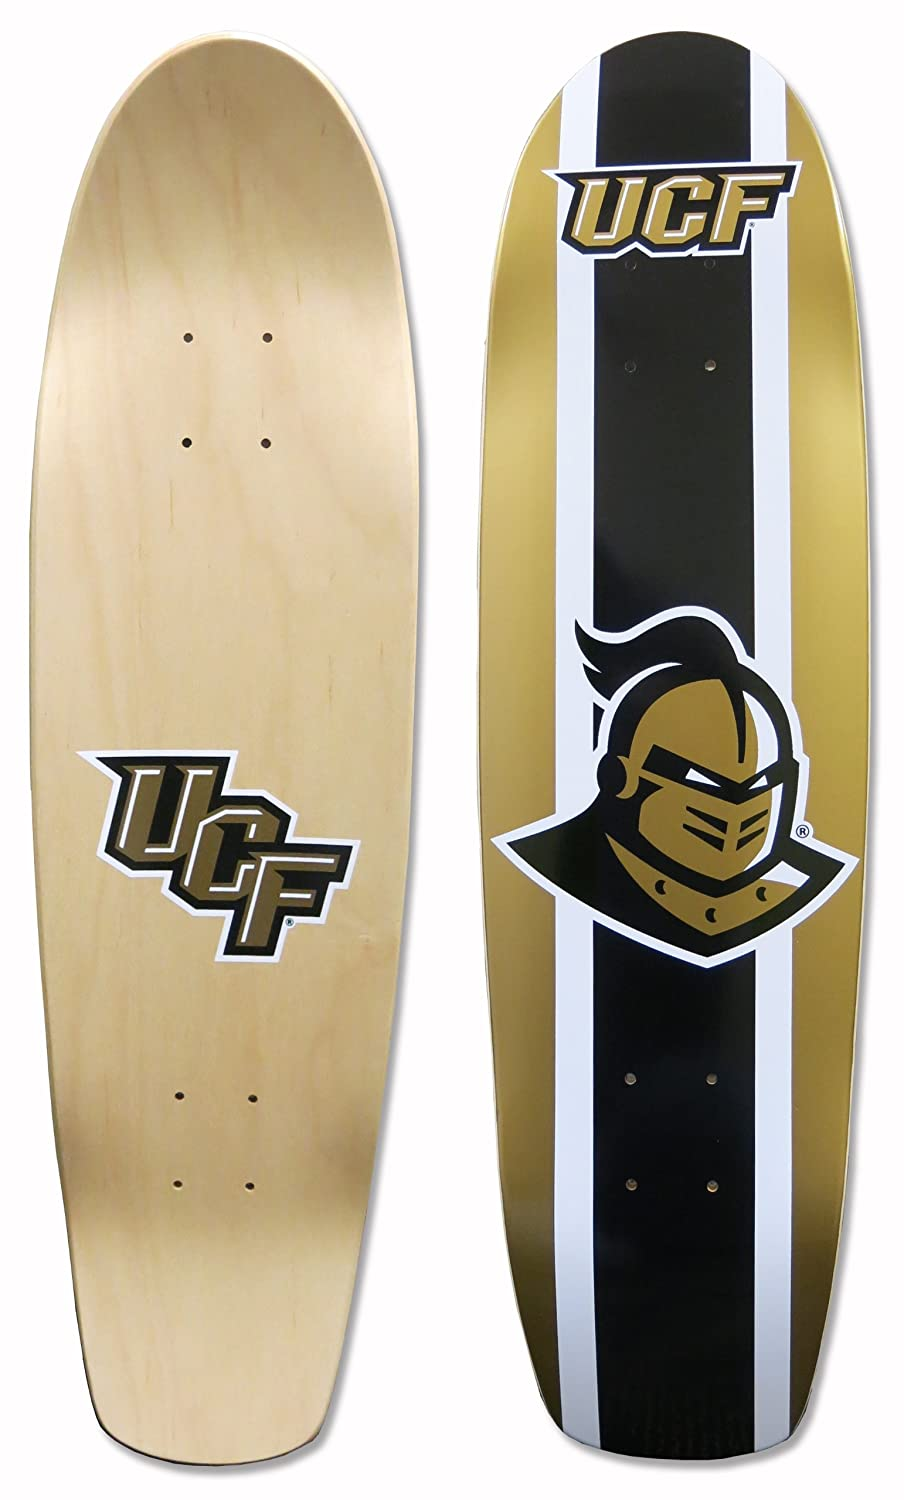 Amazon.com : University of Central Florida Skateboard Deck UCF Skate ...